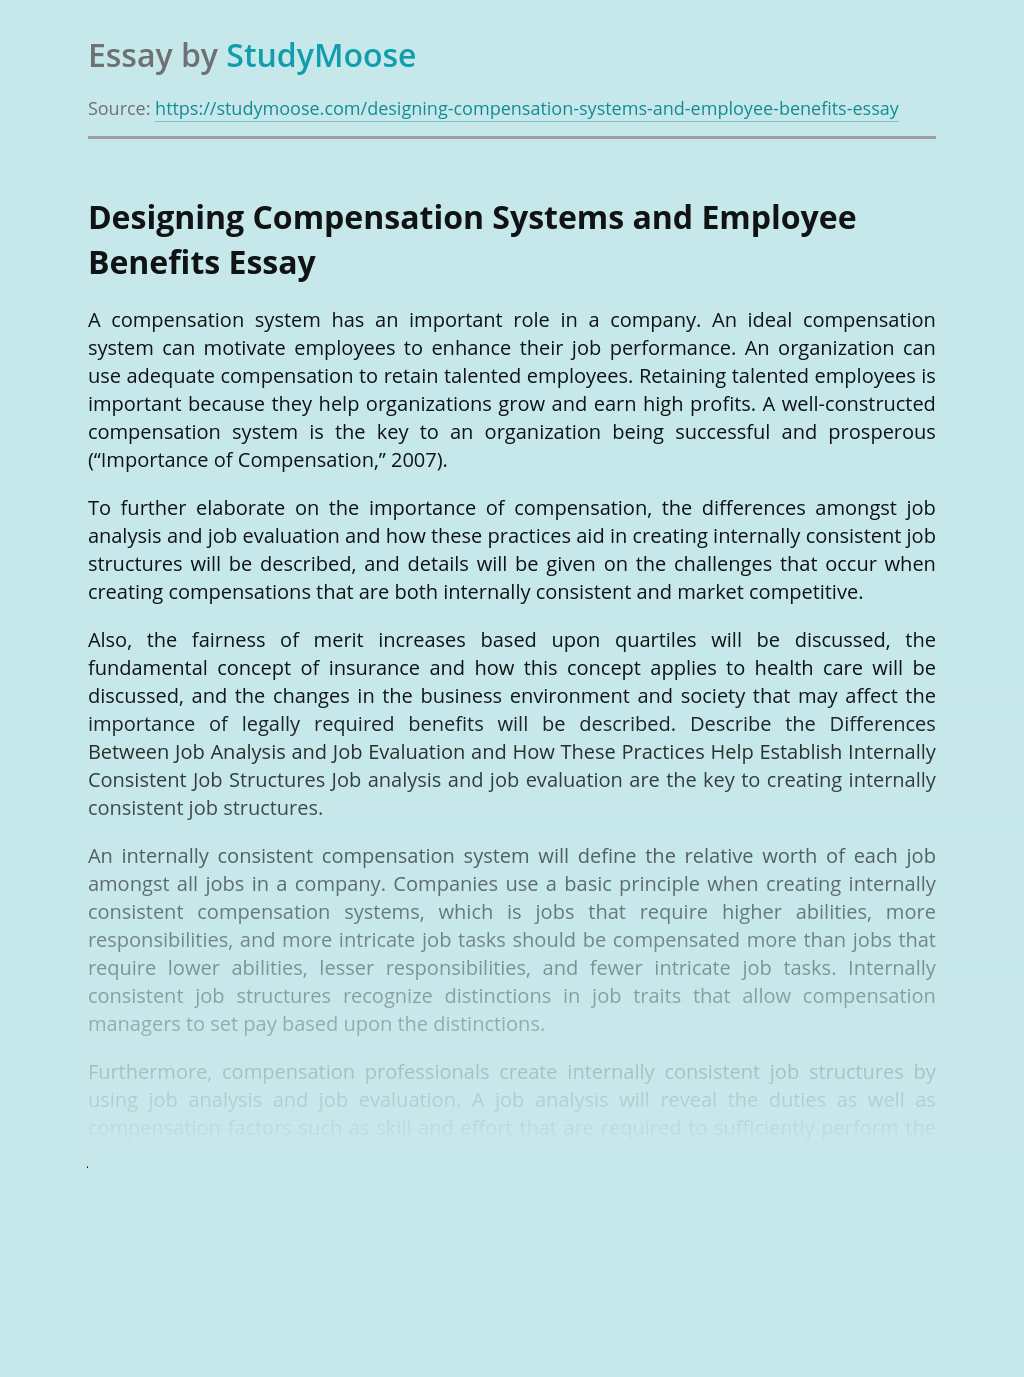 Designing Compensation Systems and Employee Benefits